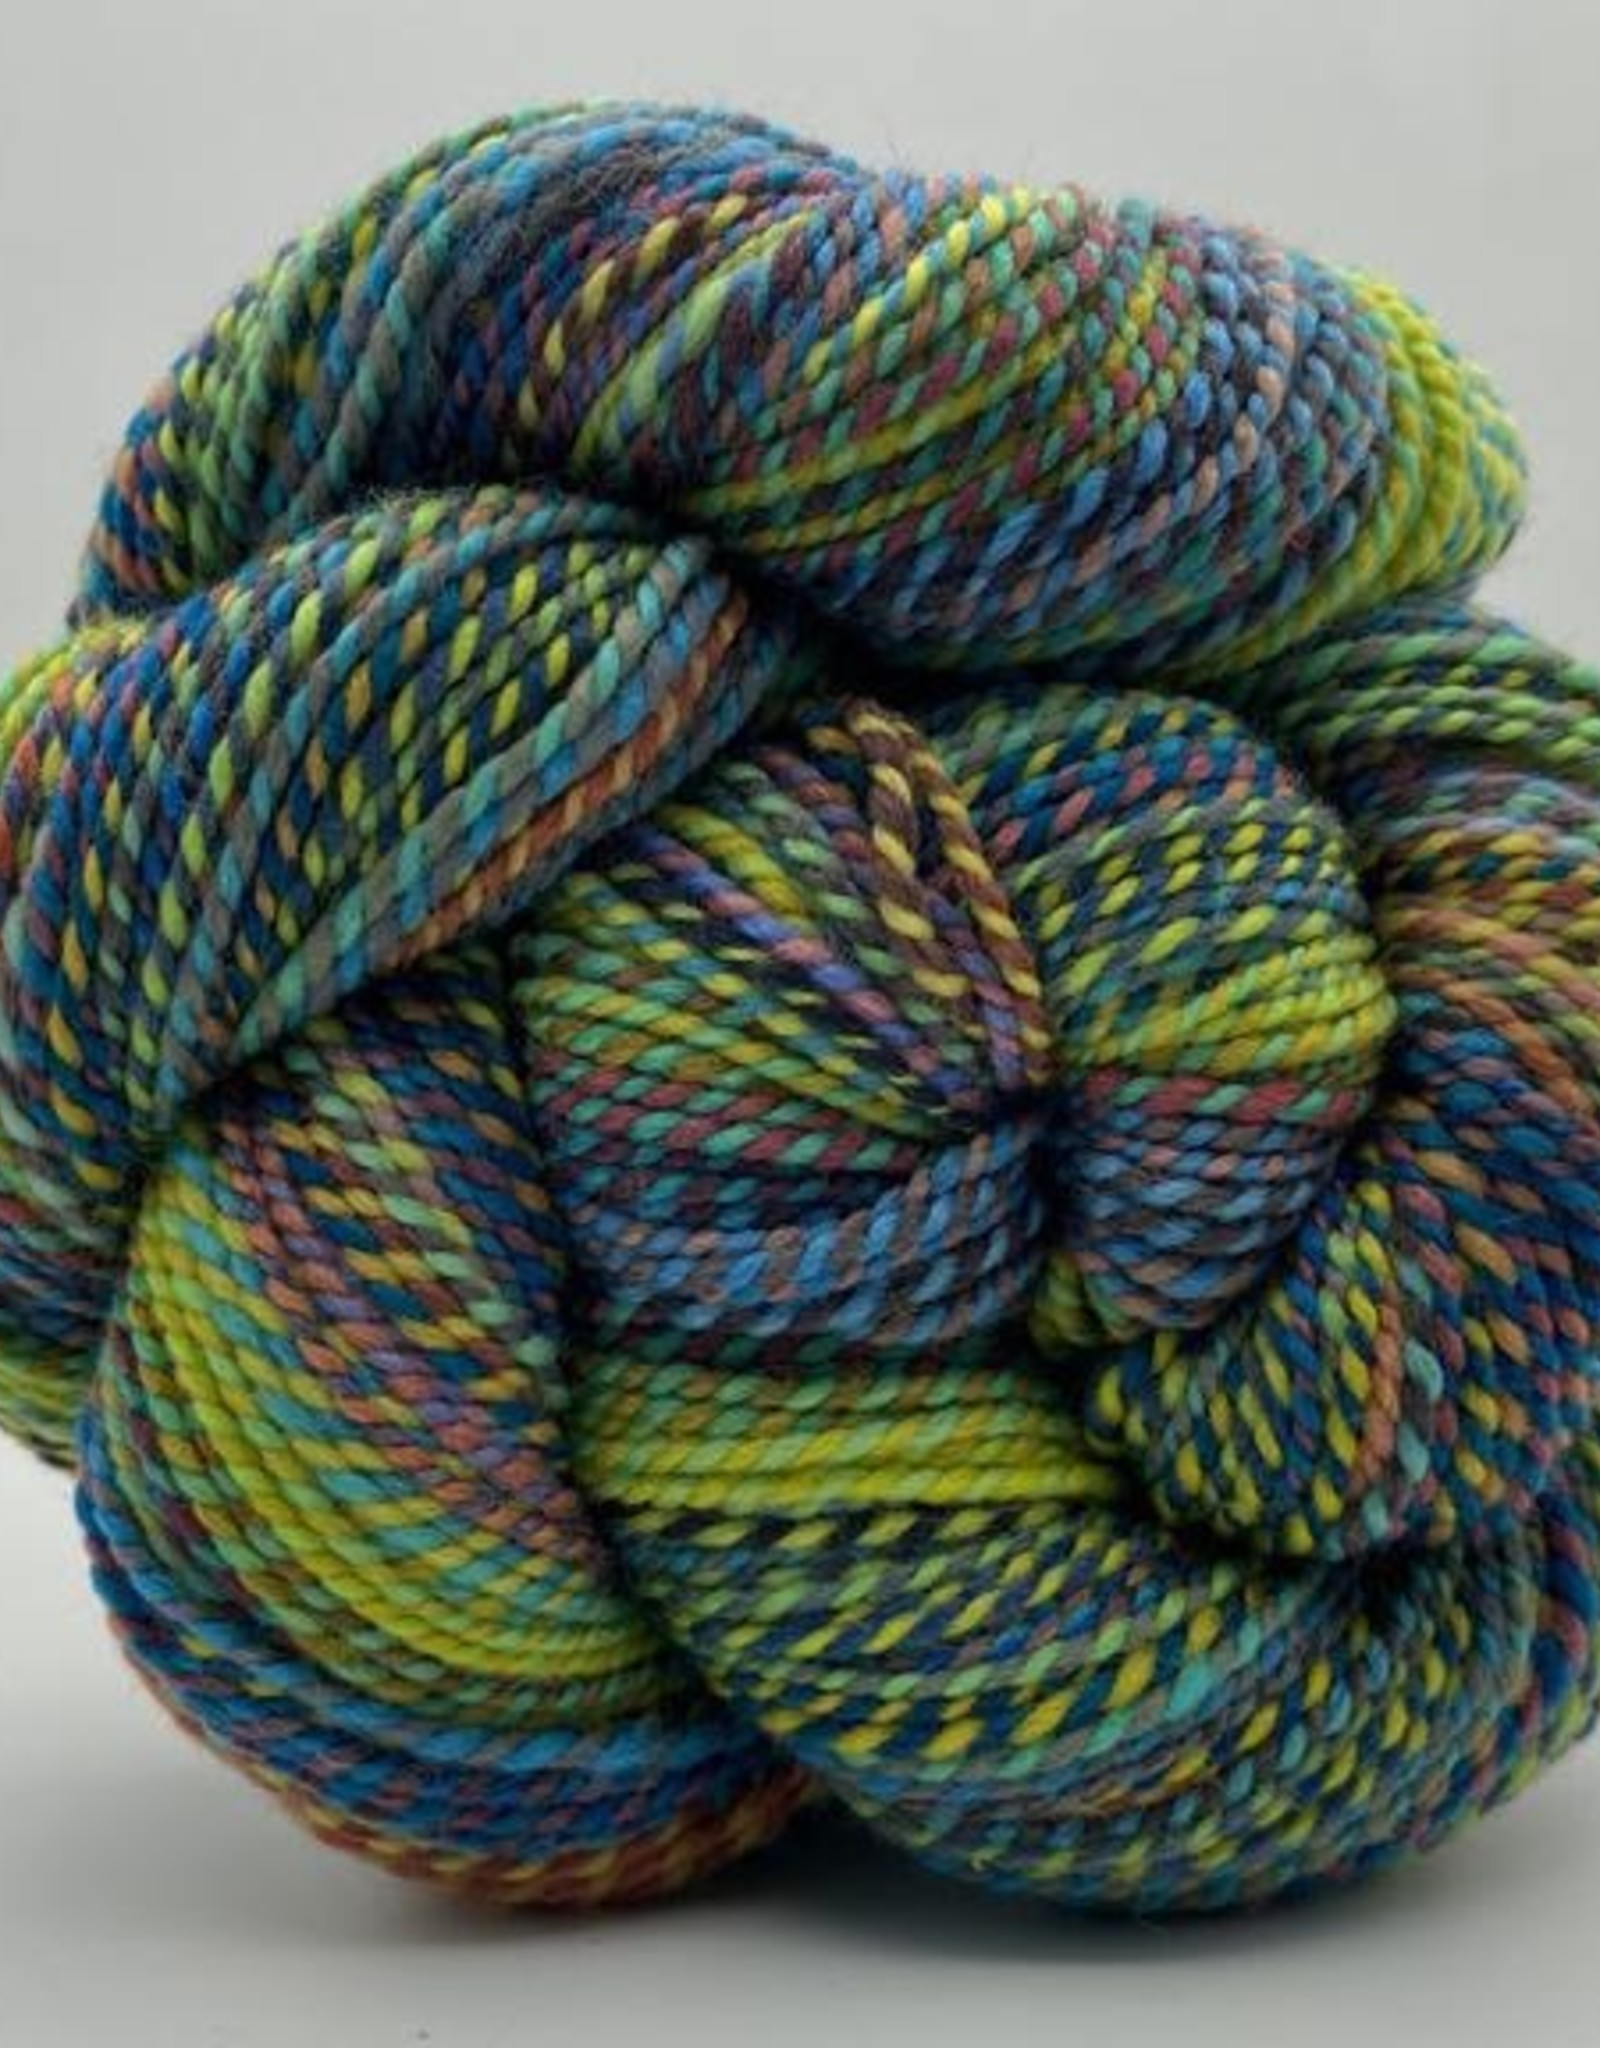 Spincycle Yarns Spincycle Yarns Dyed In The Wool